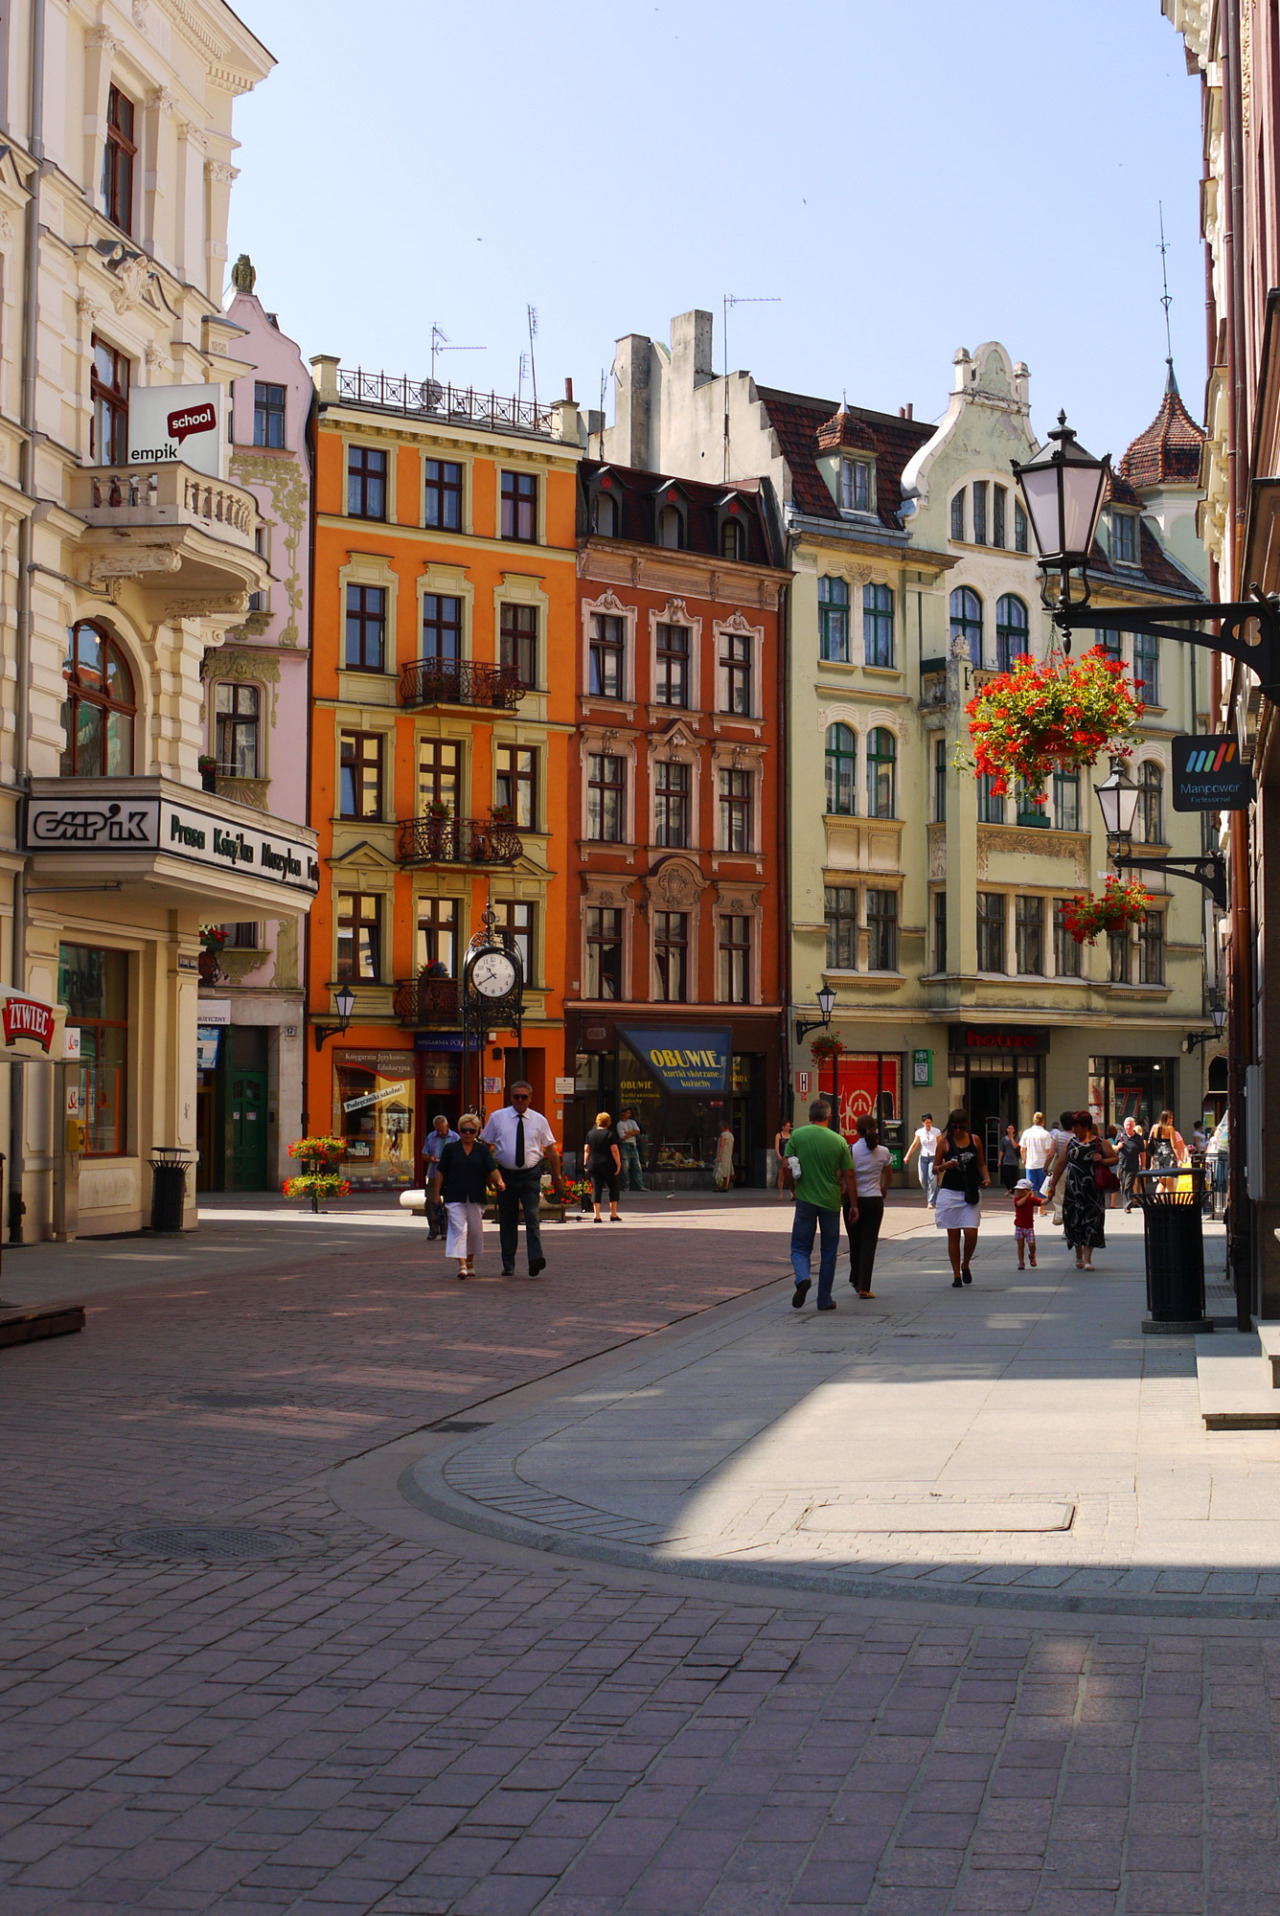 Buildings and shops in the historical centre of Toruń, one of the most beautiful towns in Poland